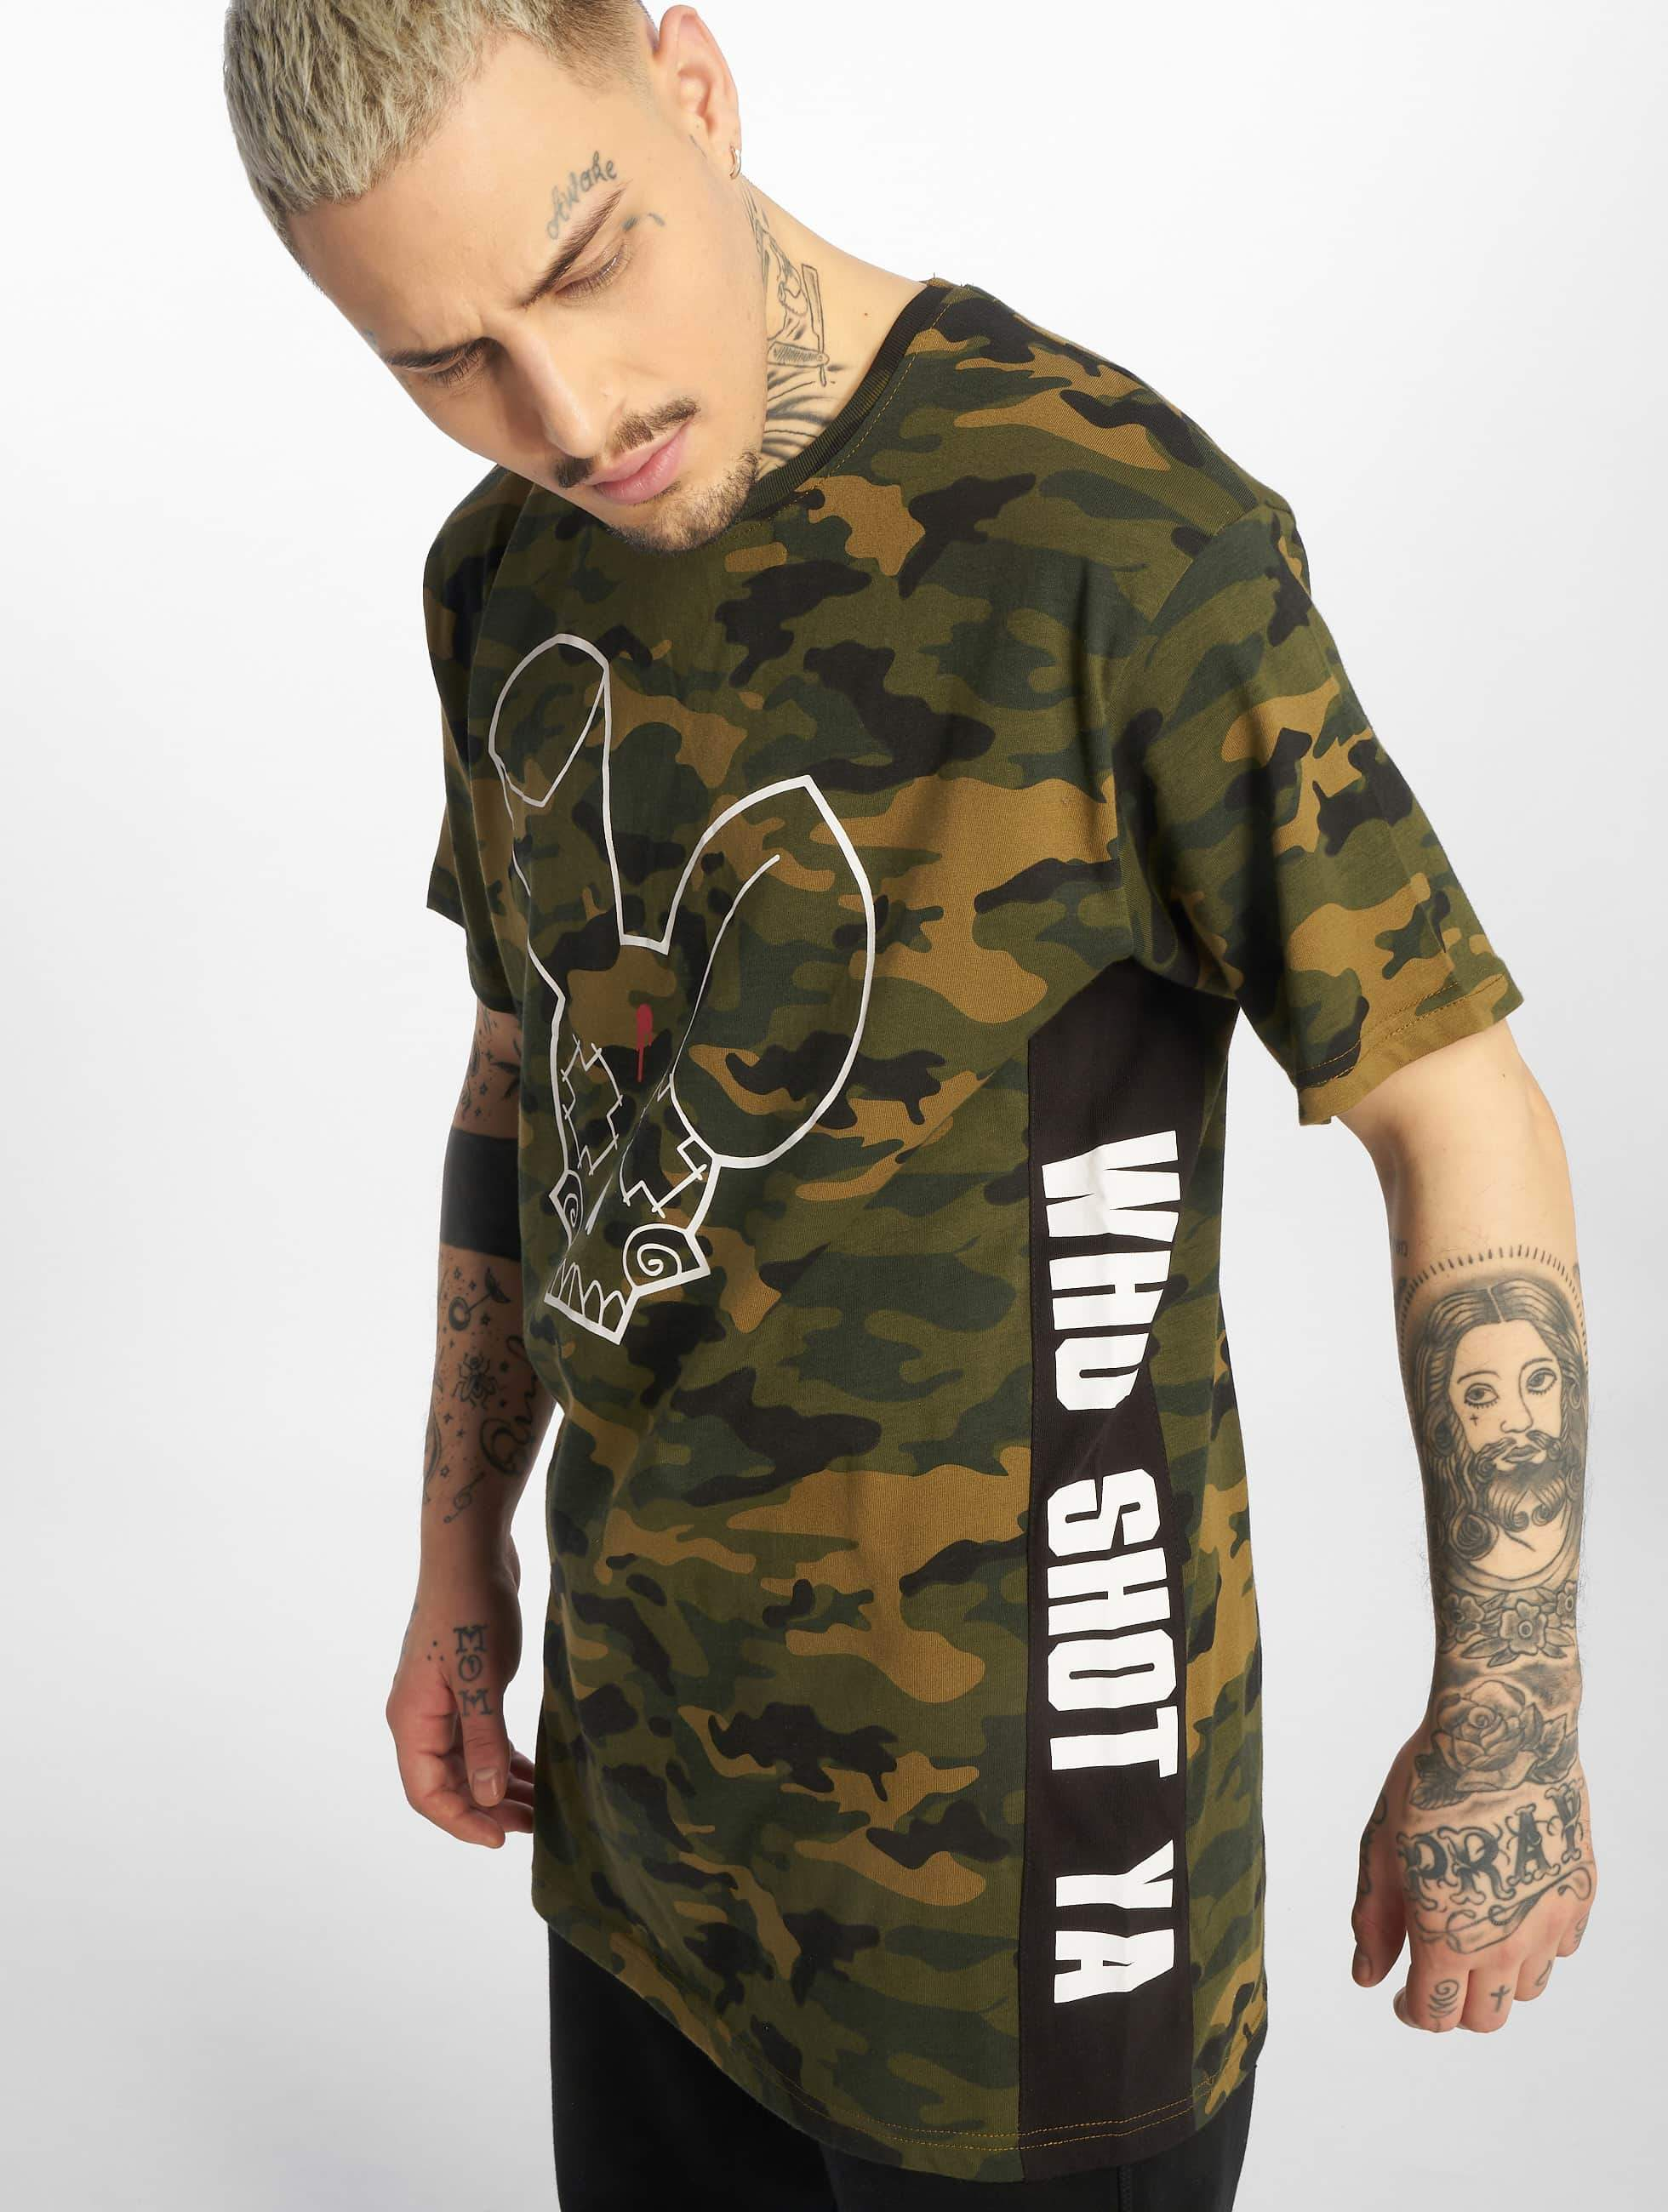 Who Shot Ya? / T-Shirt Camou Funk in camouflage S